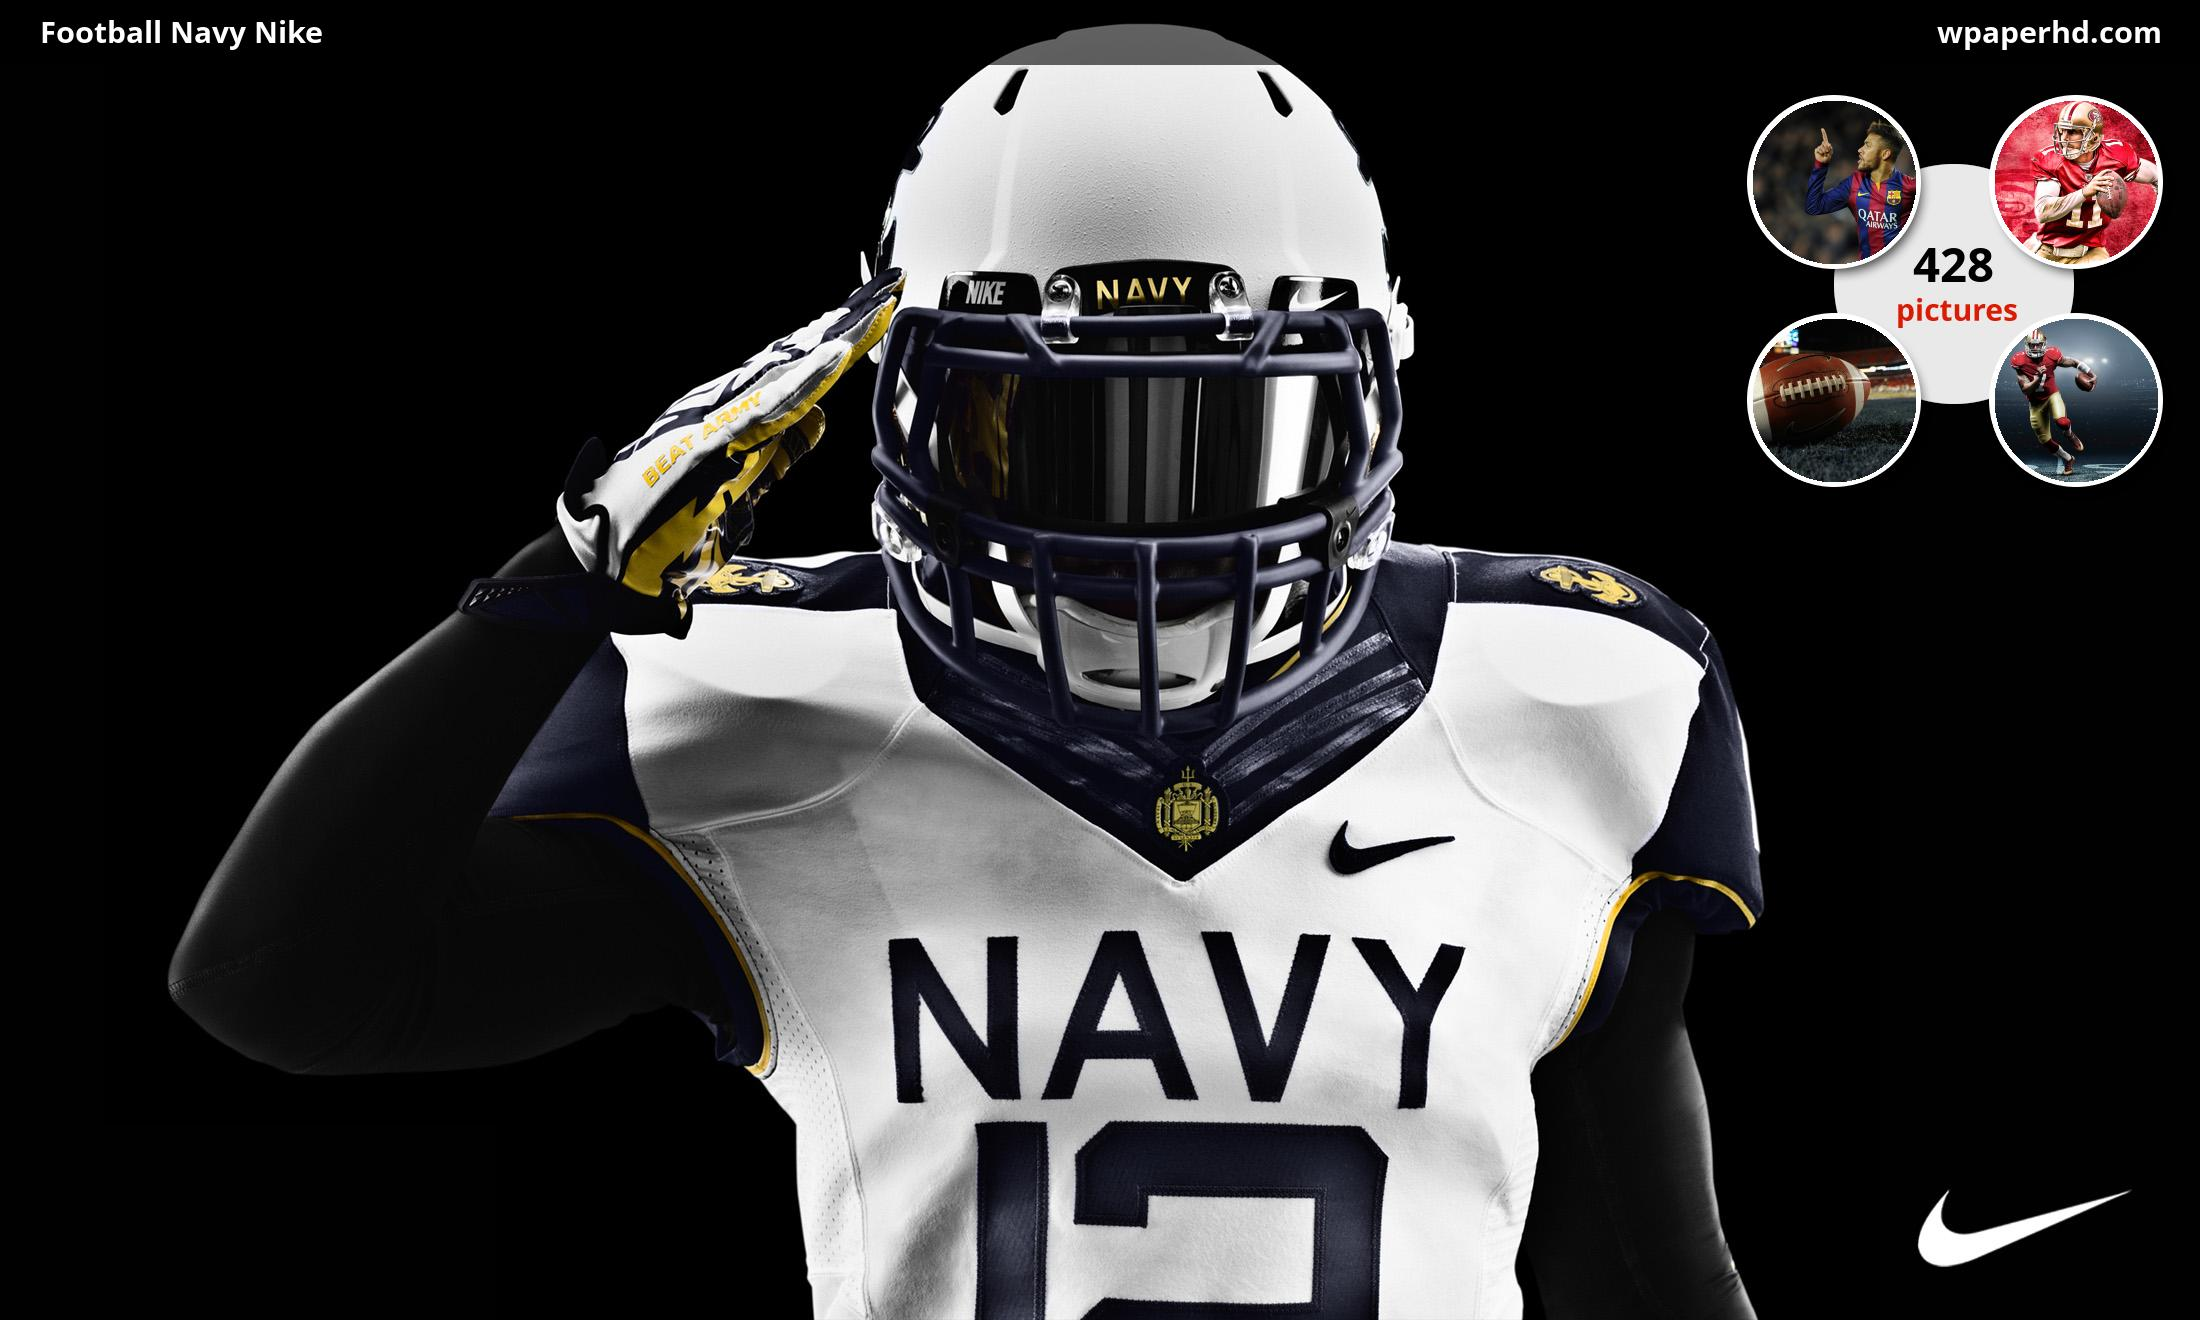 Football Wallpapers Nfl Football Nfl Wallpapers For Go Navy Beat Army Memes 2200x1320 Download Hd Wallpaper Wallpapertip